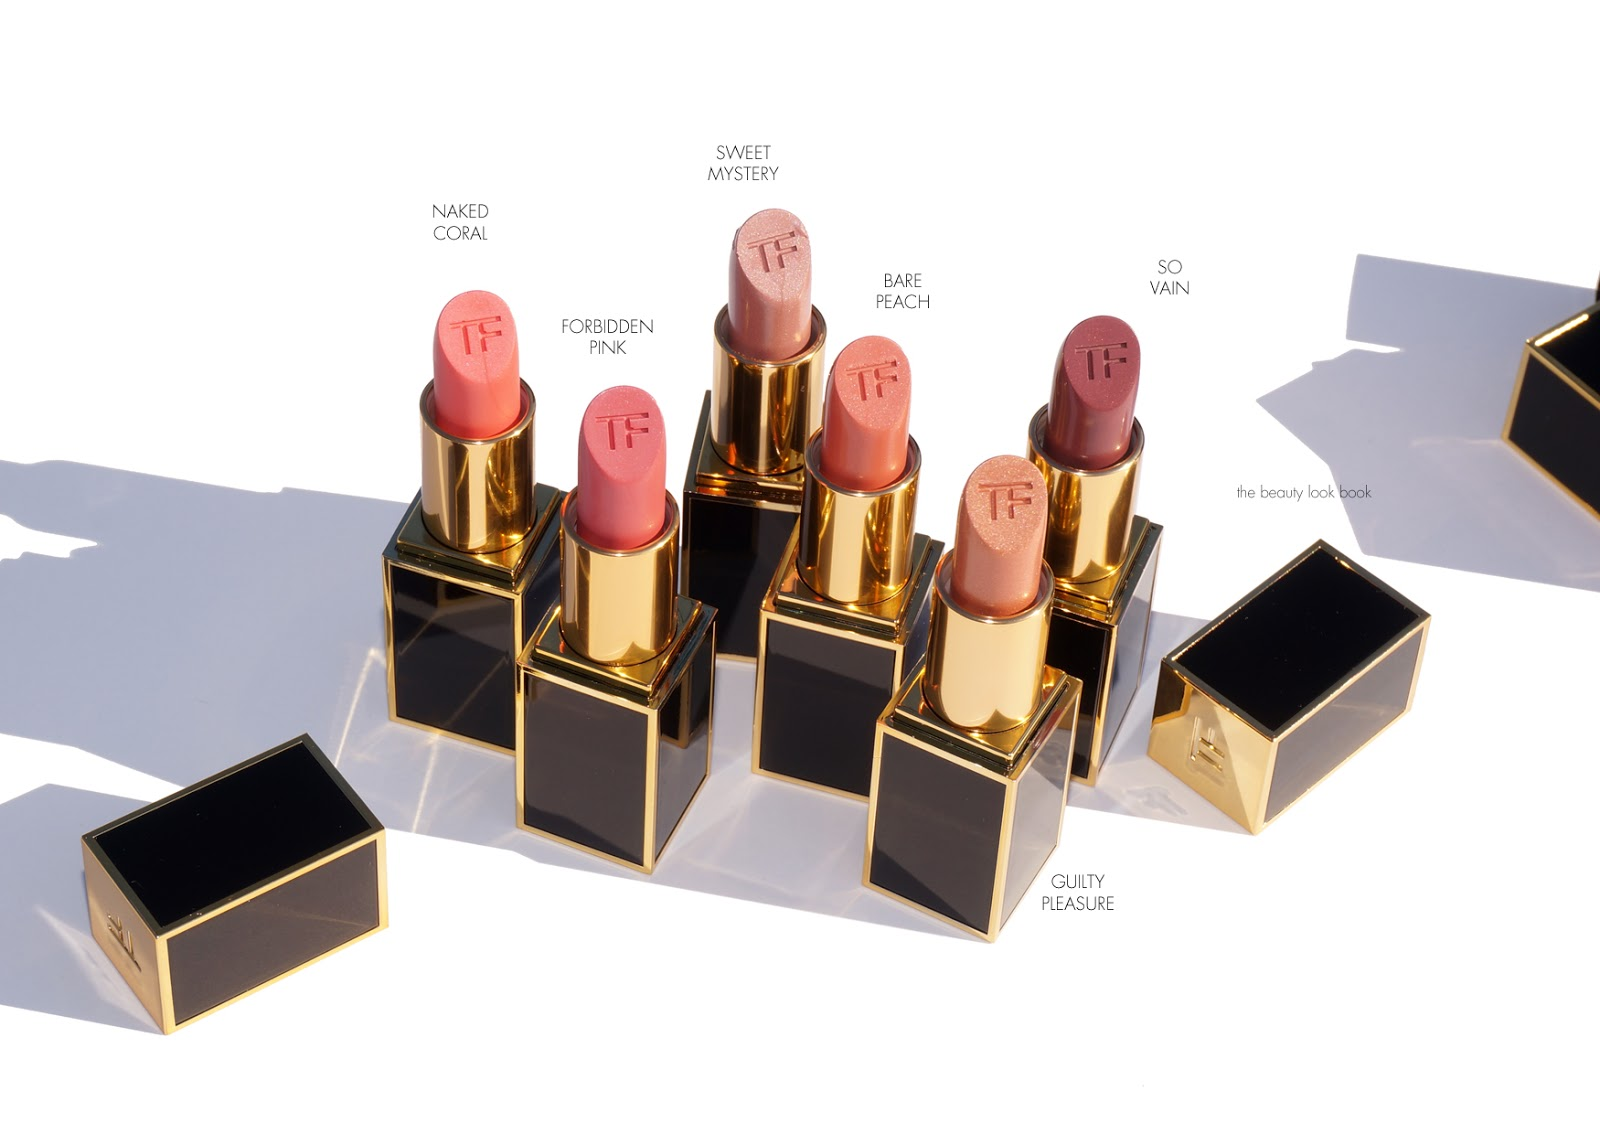 New Tom Ford Lip Colors for Fall 2015   The Beauty Look Book